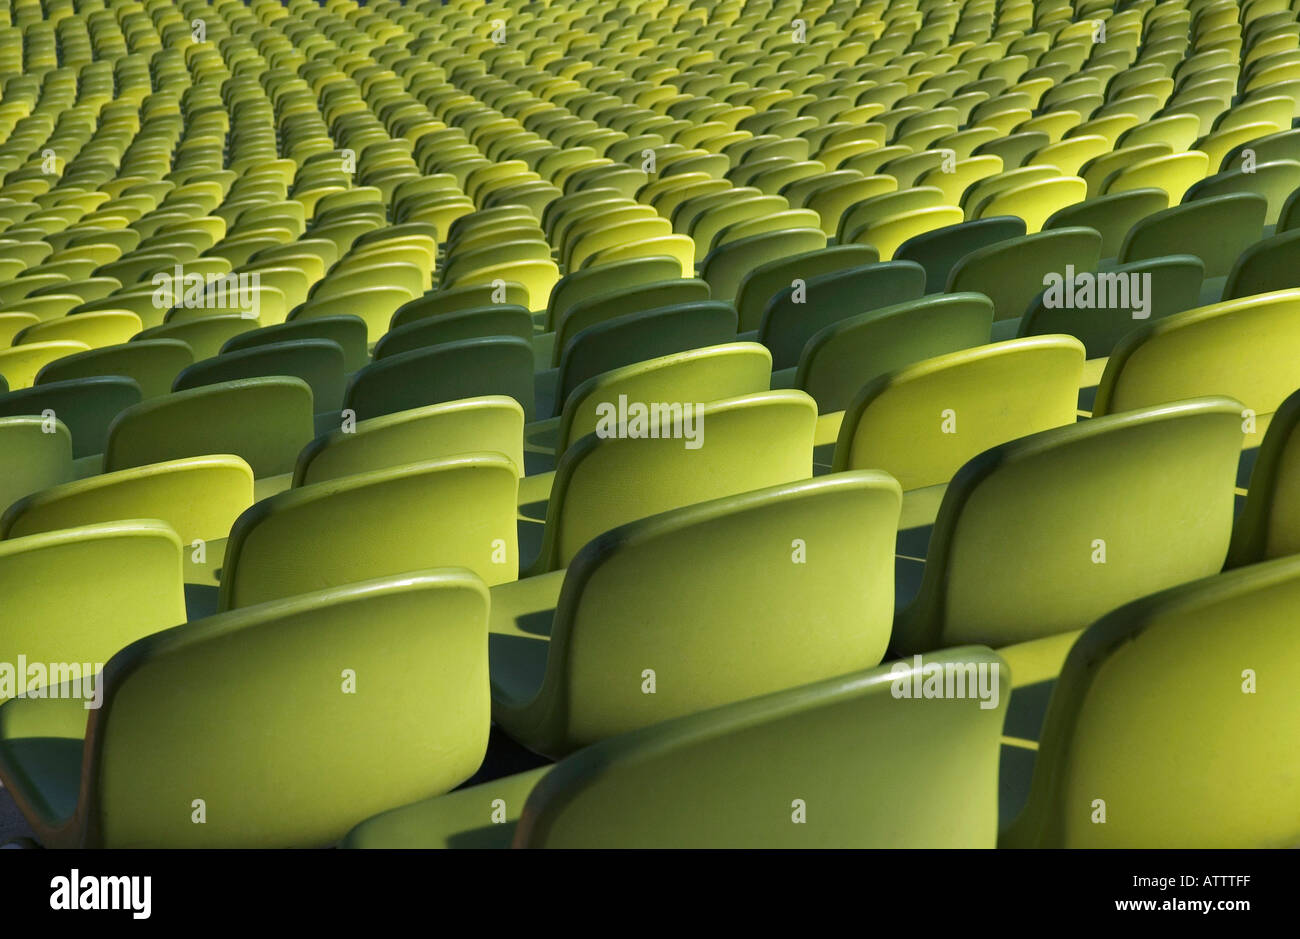 Green seats in the Olympic Stadium Munich, Bavaria, Germany - Stock Image